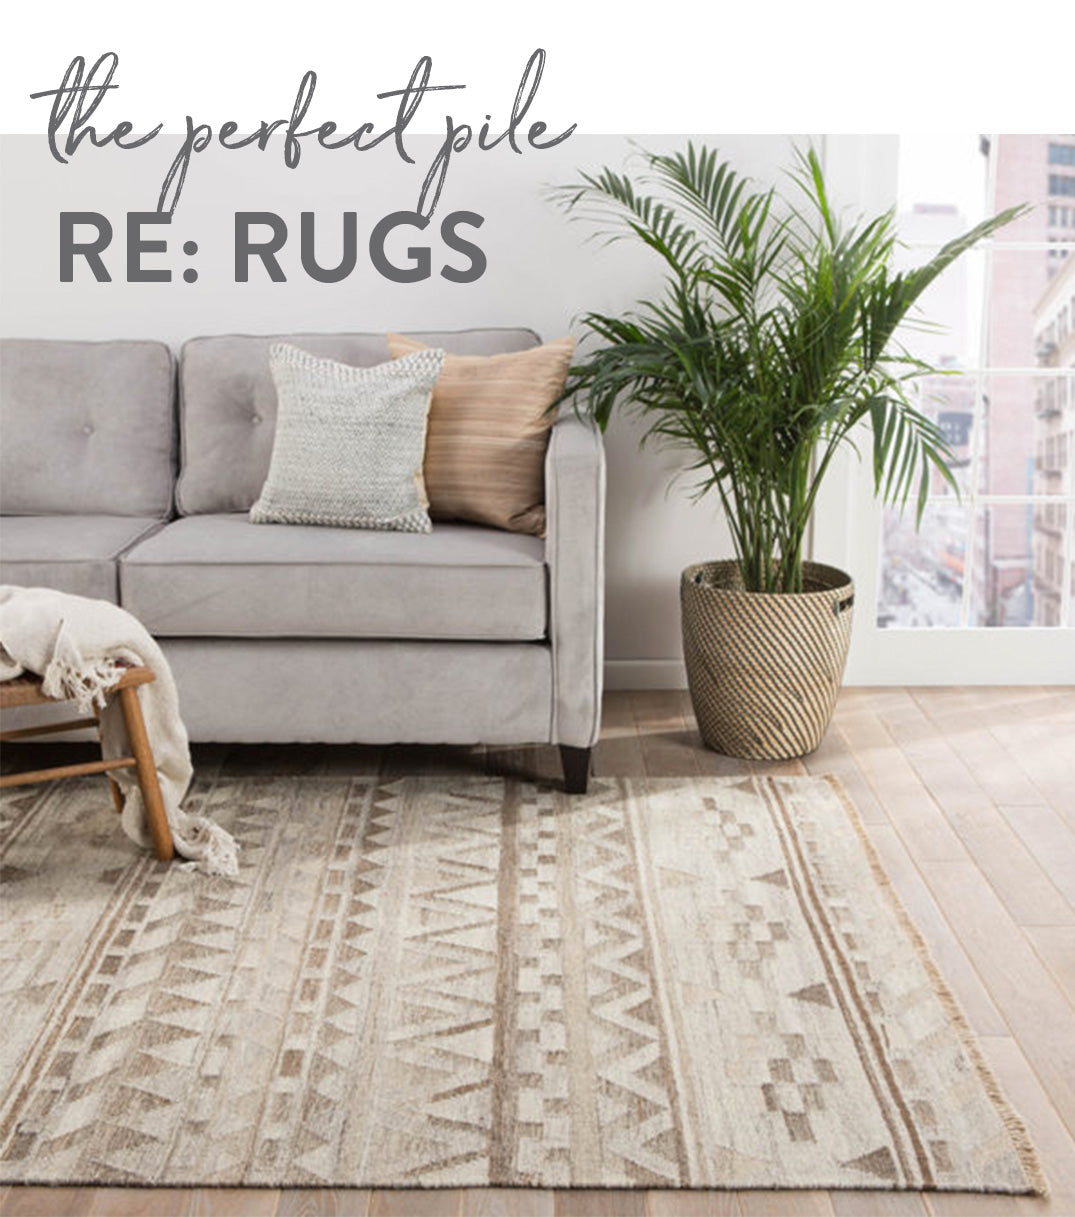 How to find the perfect rug, Dear Keaton